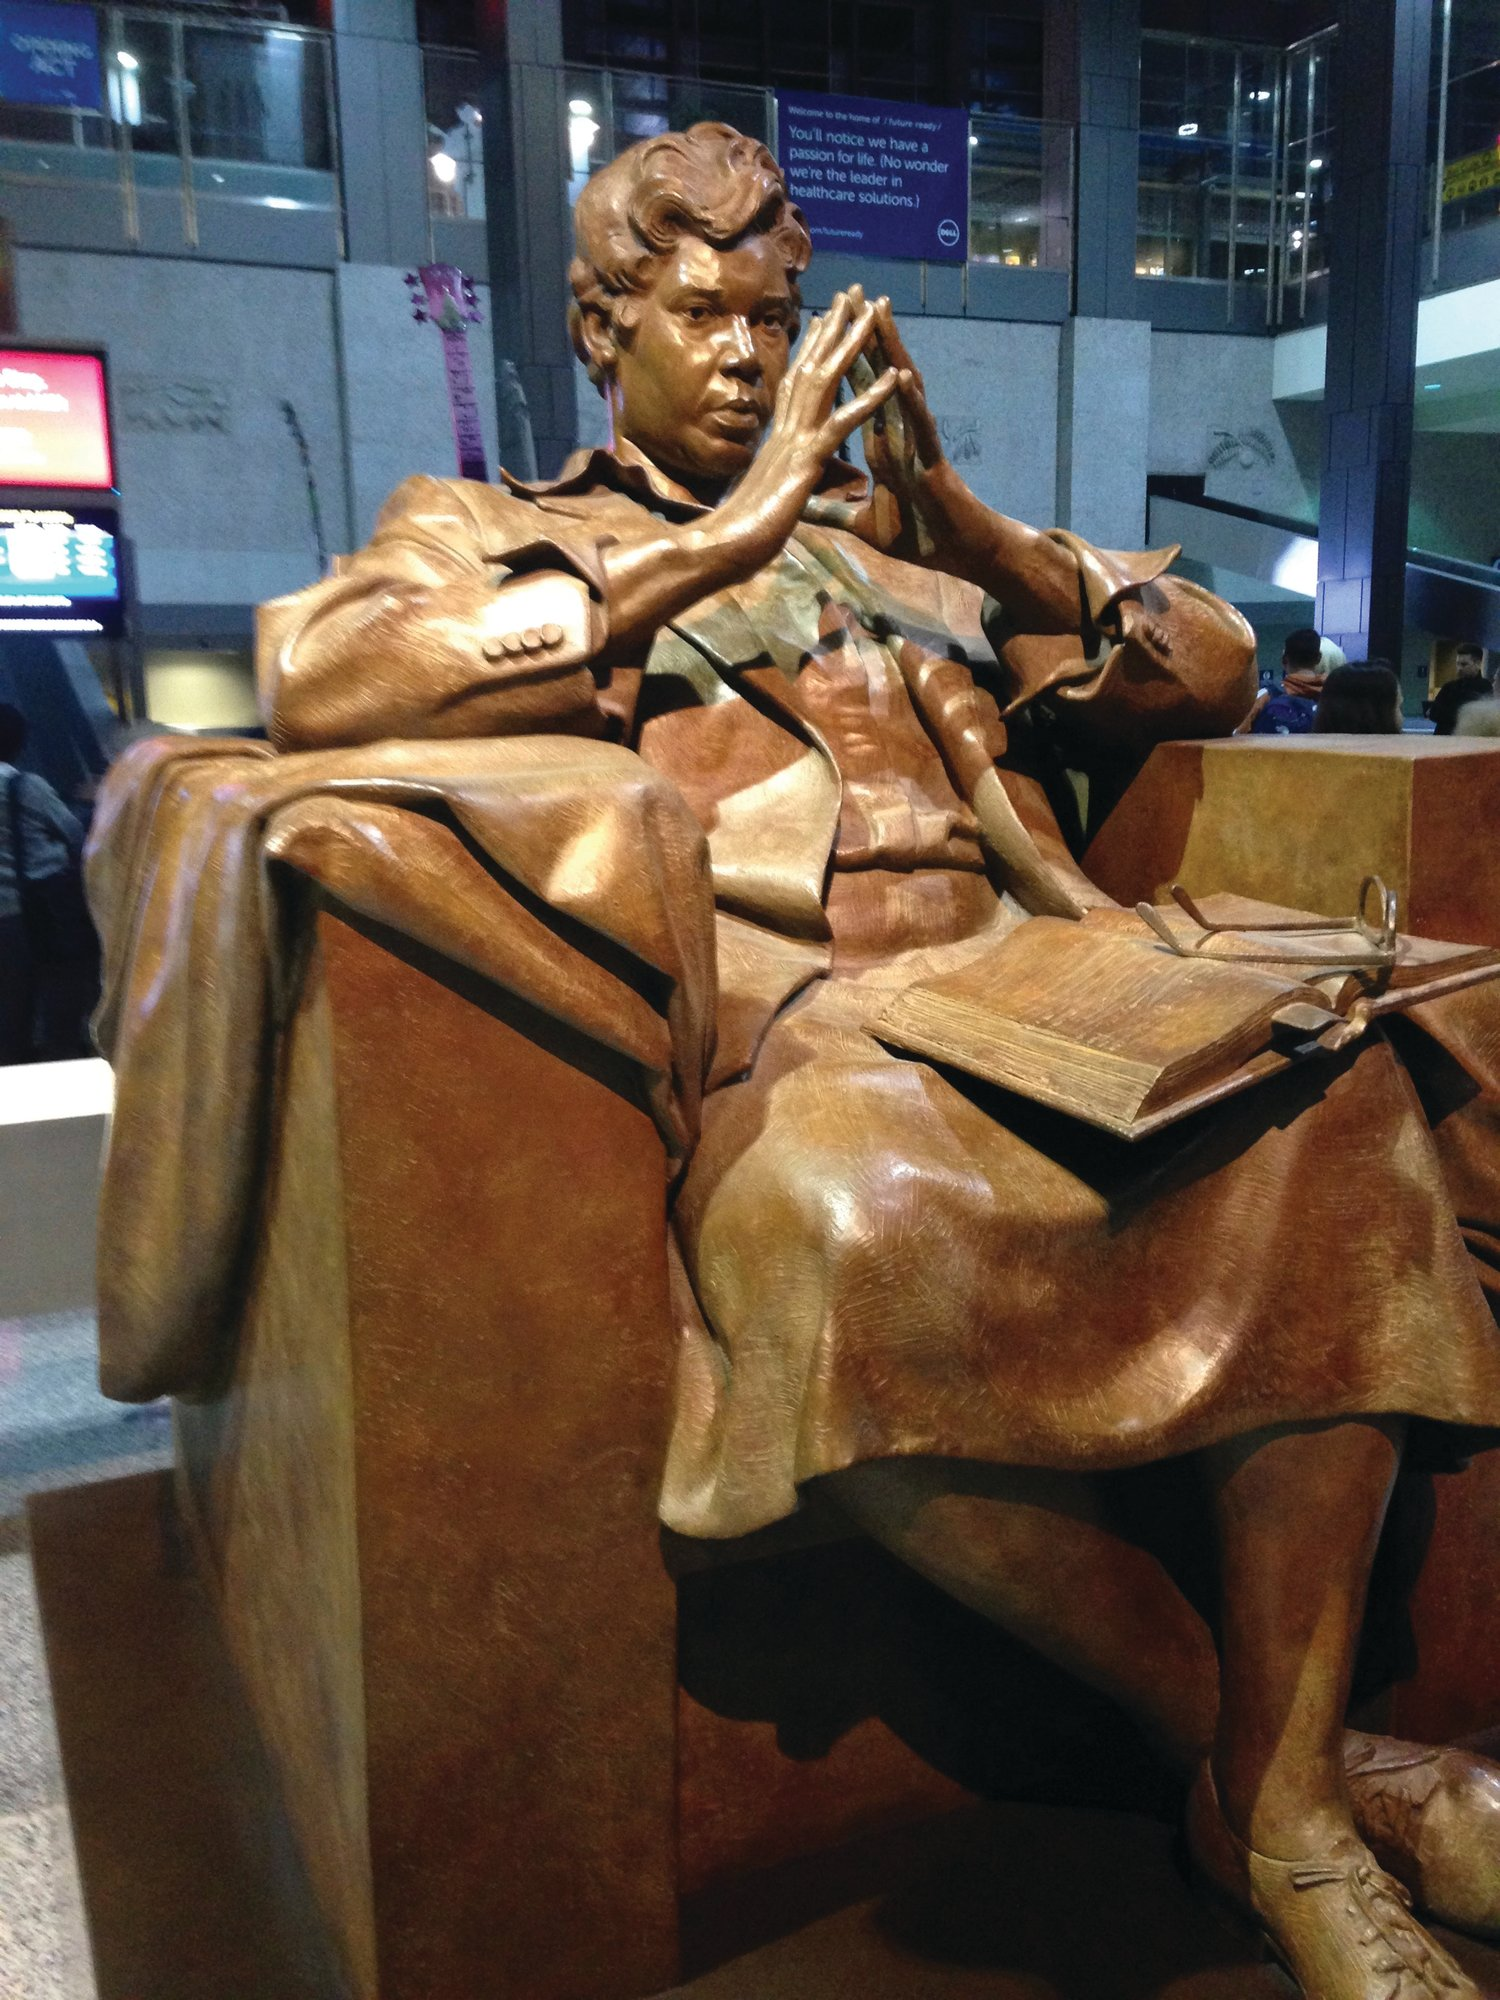 AP FILE PHOTO  A statue of former U.S. Rep. Barbara Jordan, the first African-American elected to the Texas Senate after Reconstruction and the first Southern African-American woman elected to the U.S. House of Representatives, sits at the Austin-Bergstrom International Airport in Austin, Texas. Jordan is another figure who activists say needs to be honored.